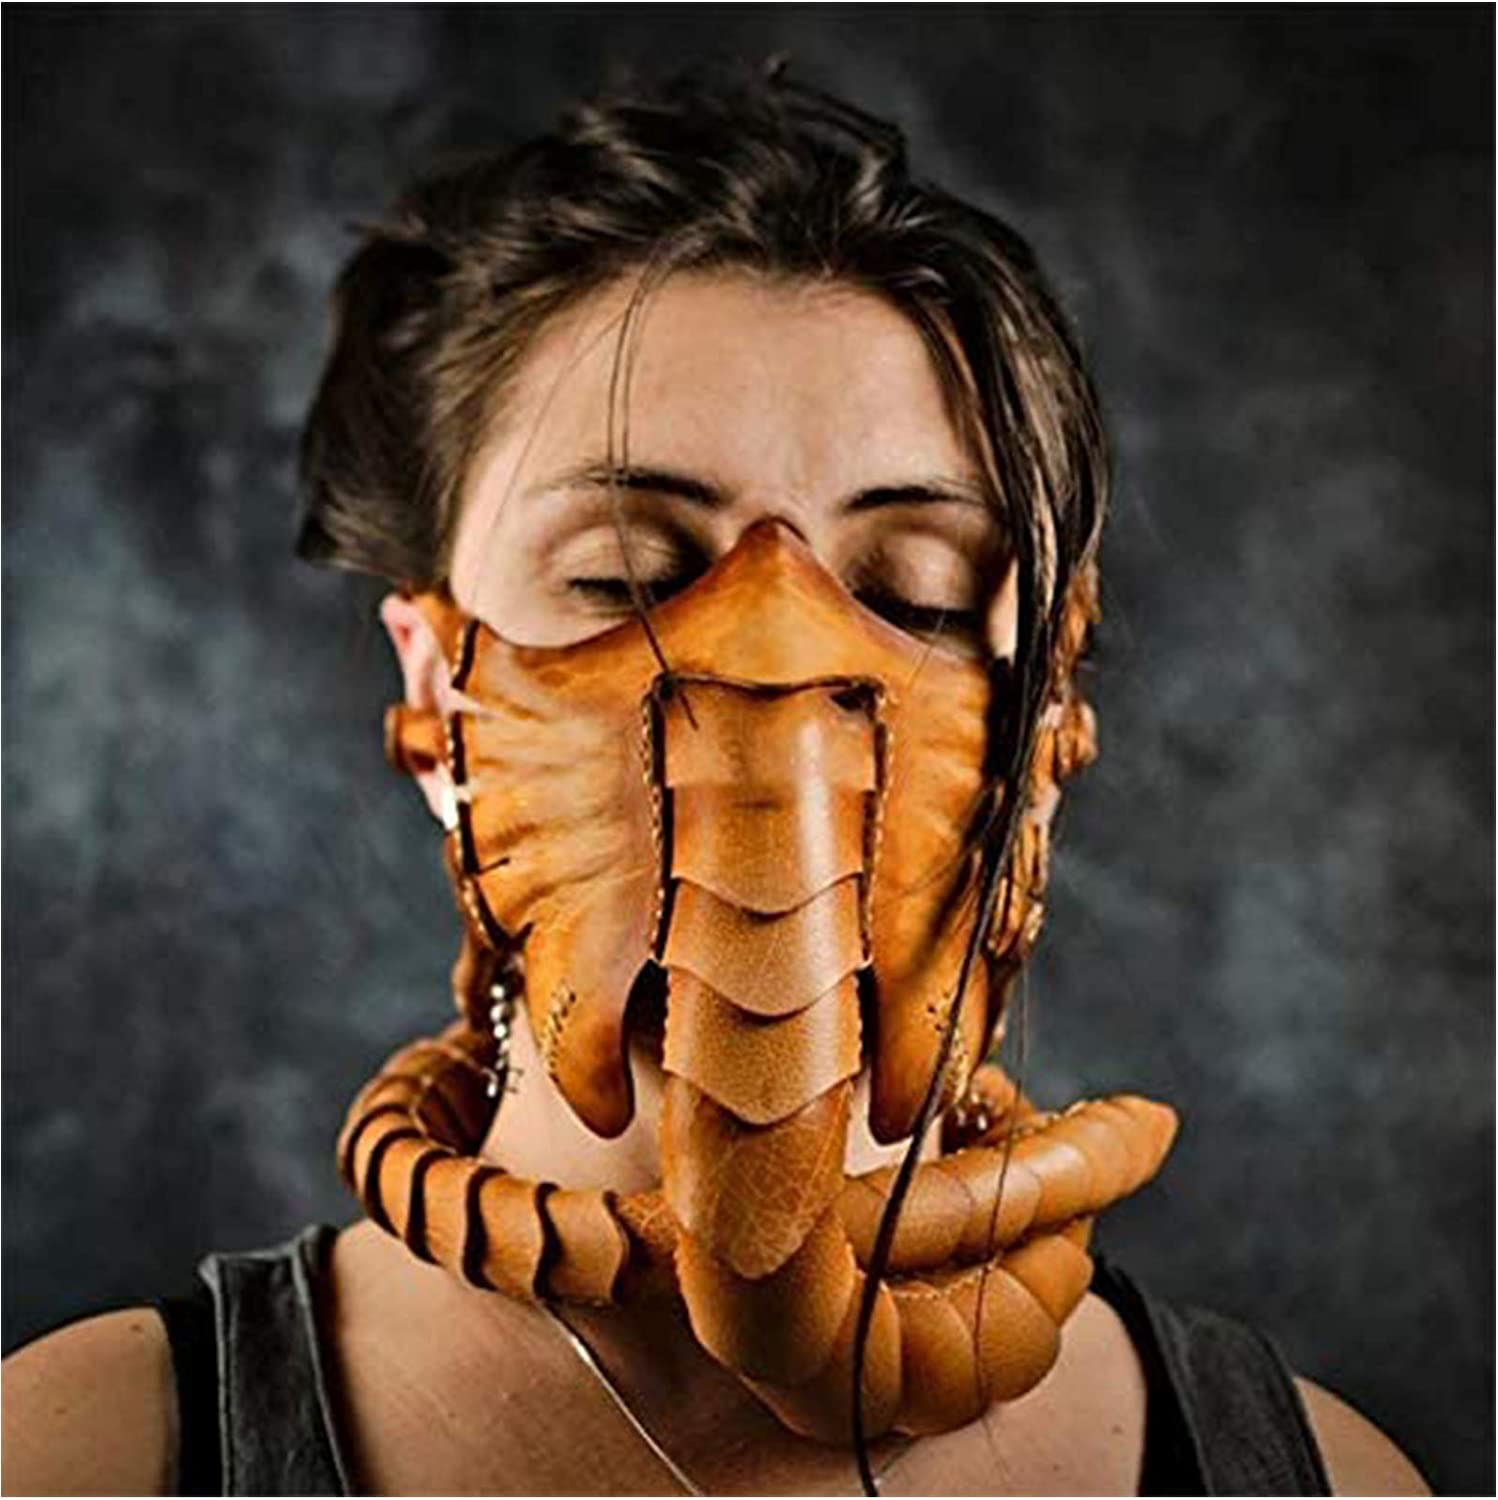 Halloween Scorpion Mask Horror Worm Facehugger Mask Full Face Alien Claws Headgear Costume Props for Cosplay Party Masquerade,Beige